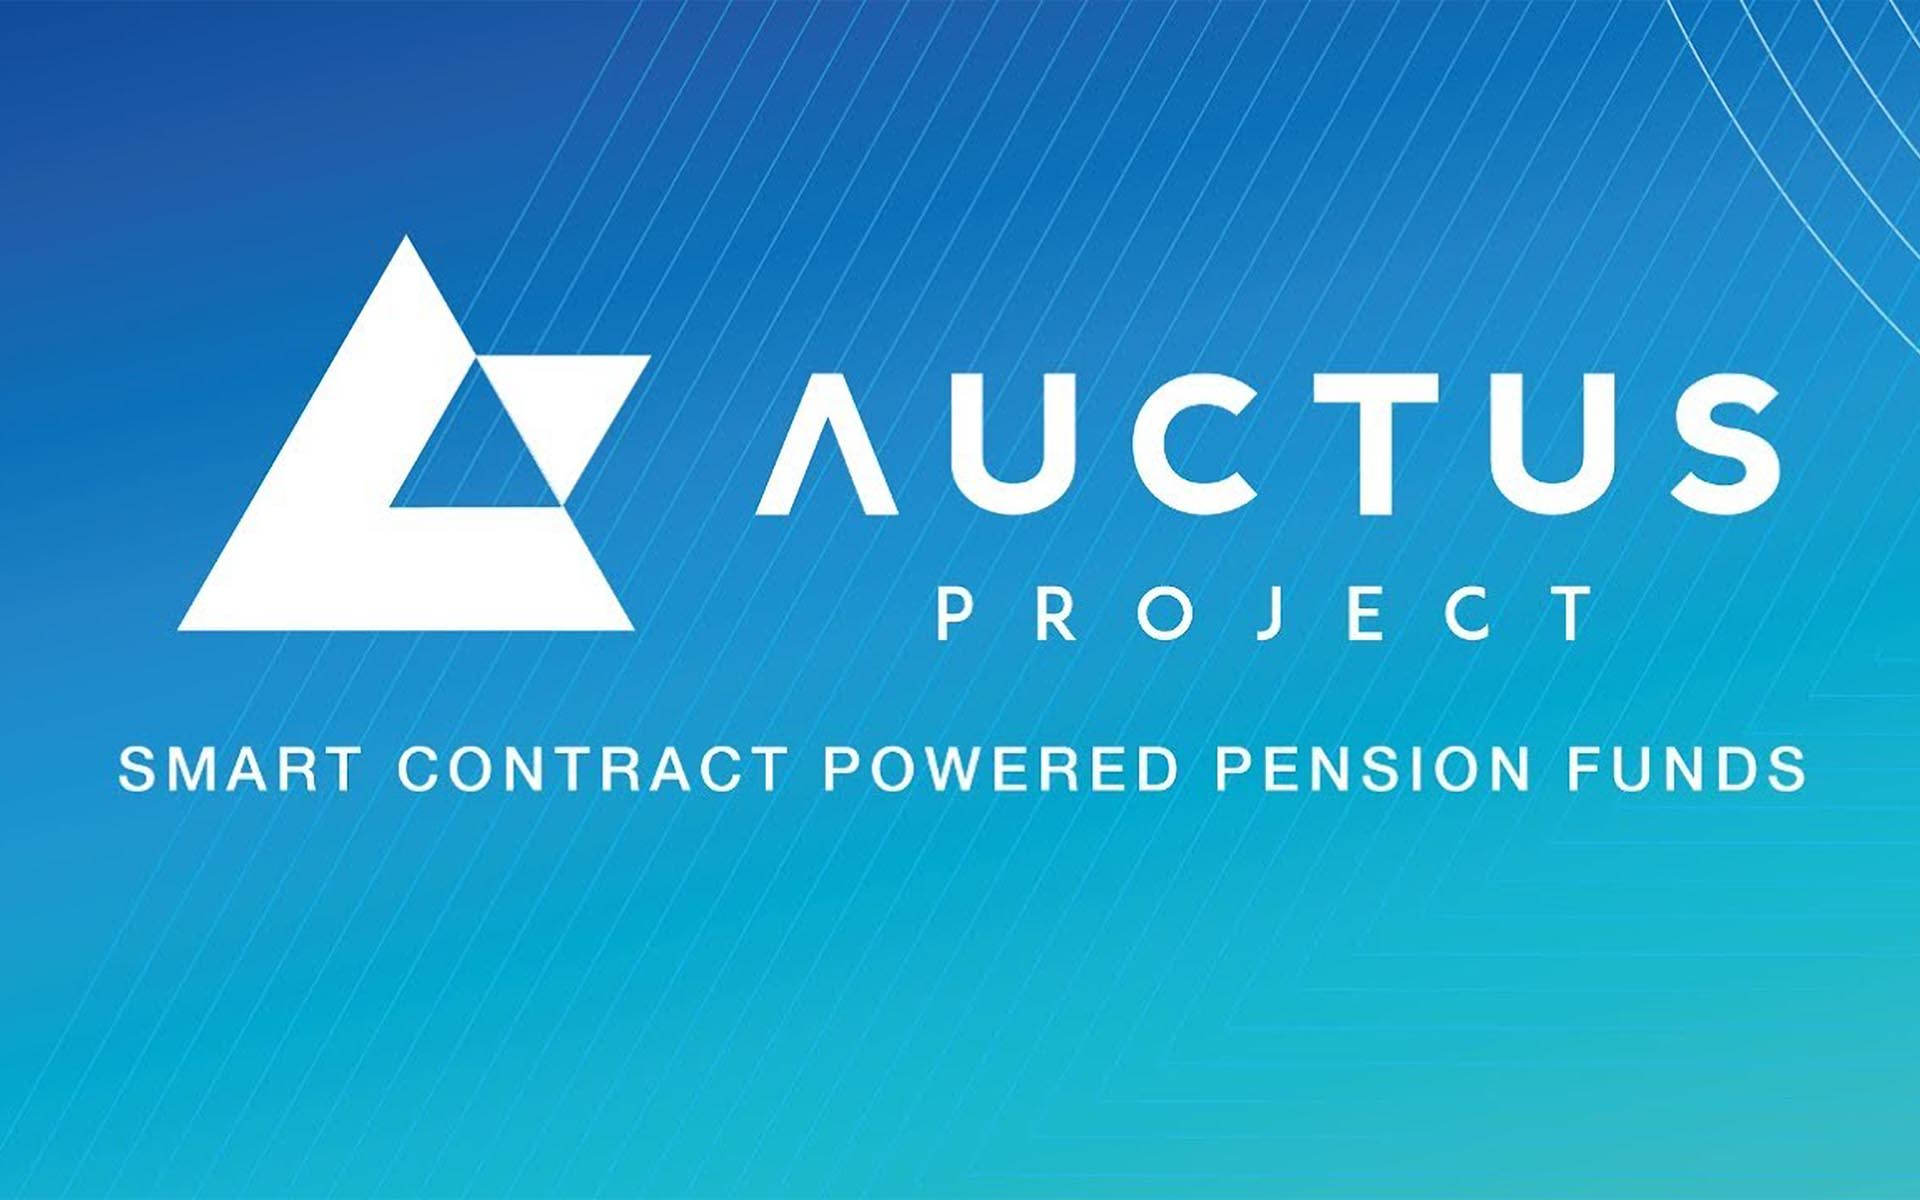 Auctus Integrating Bancor ProtocolTM to Provide Continuous Liquidity for AUC Token Holders